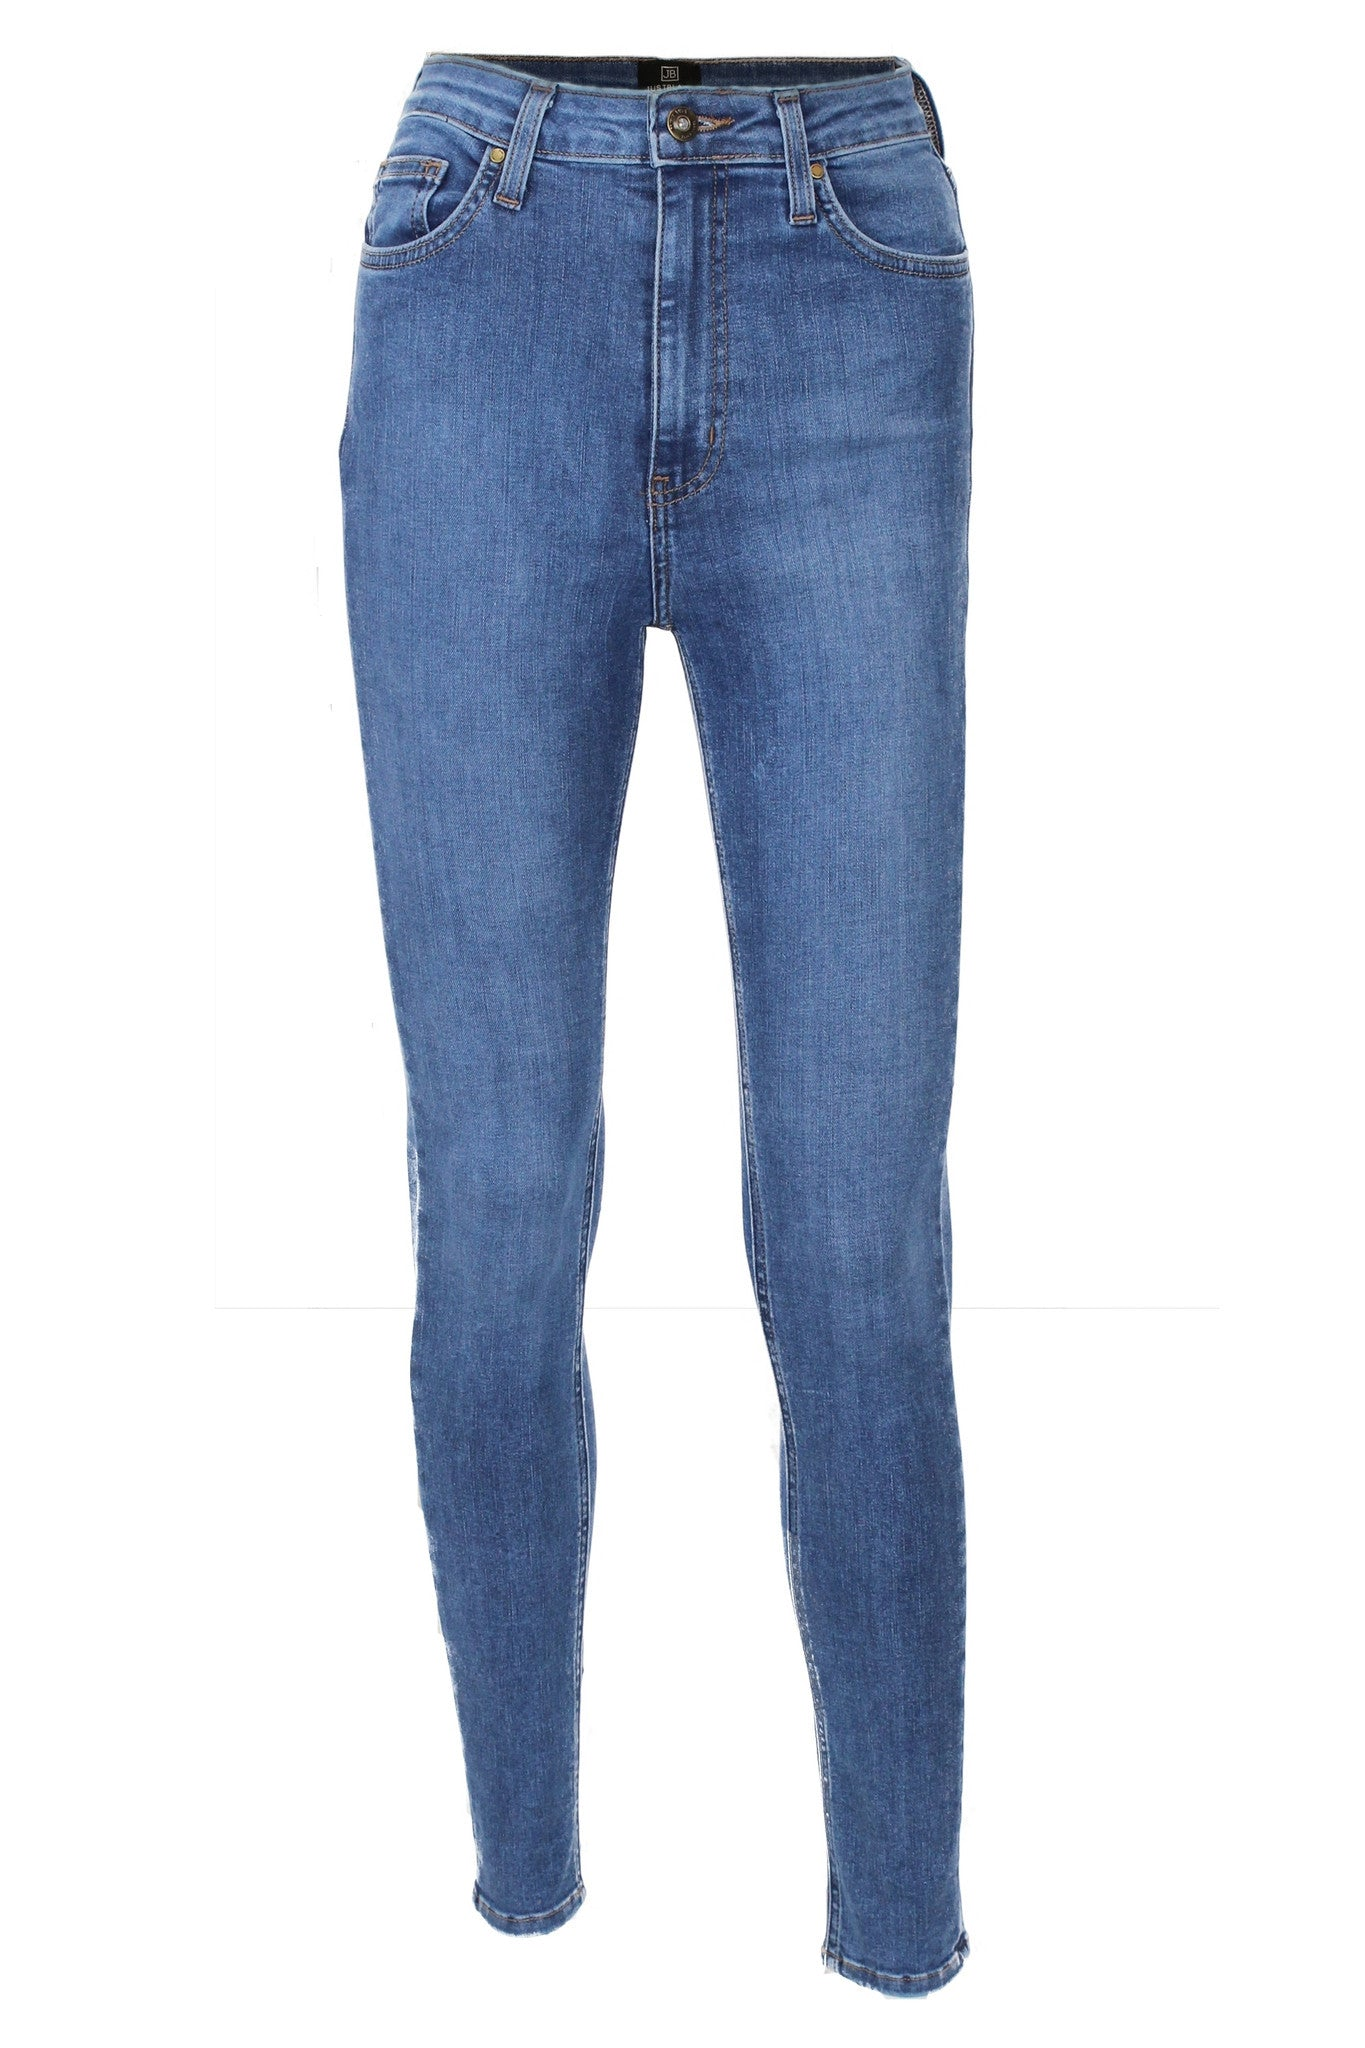 Country Girl Ultra High Rise Skinny Jeans - Medium Wash